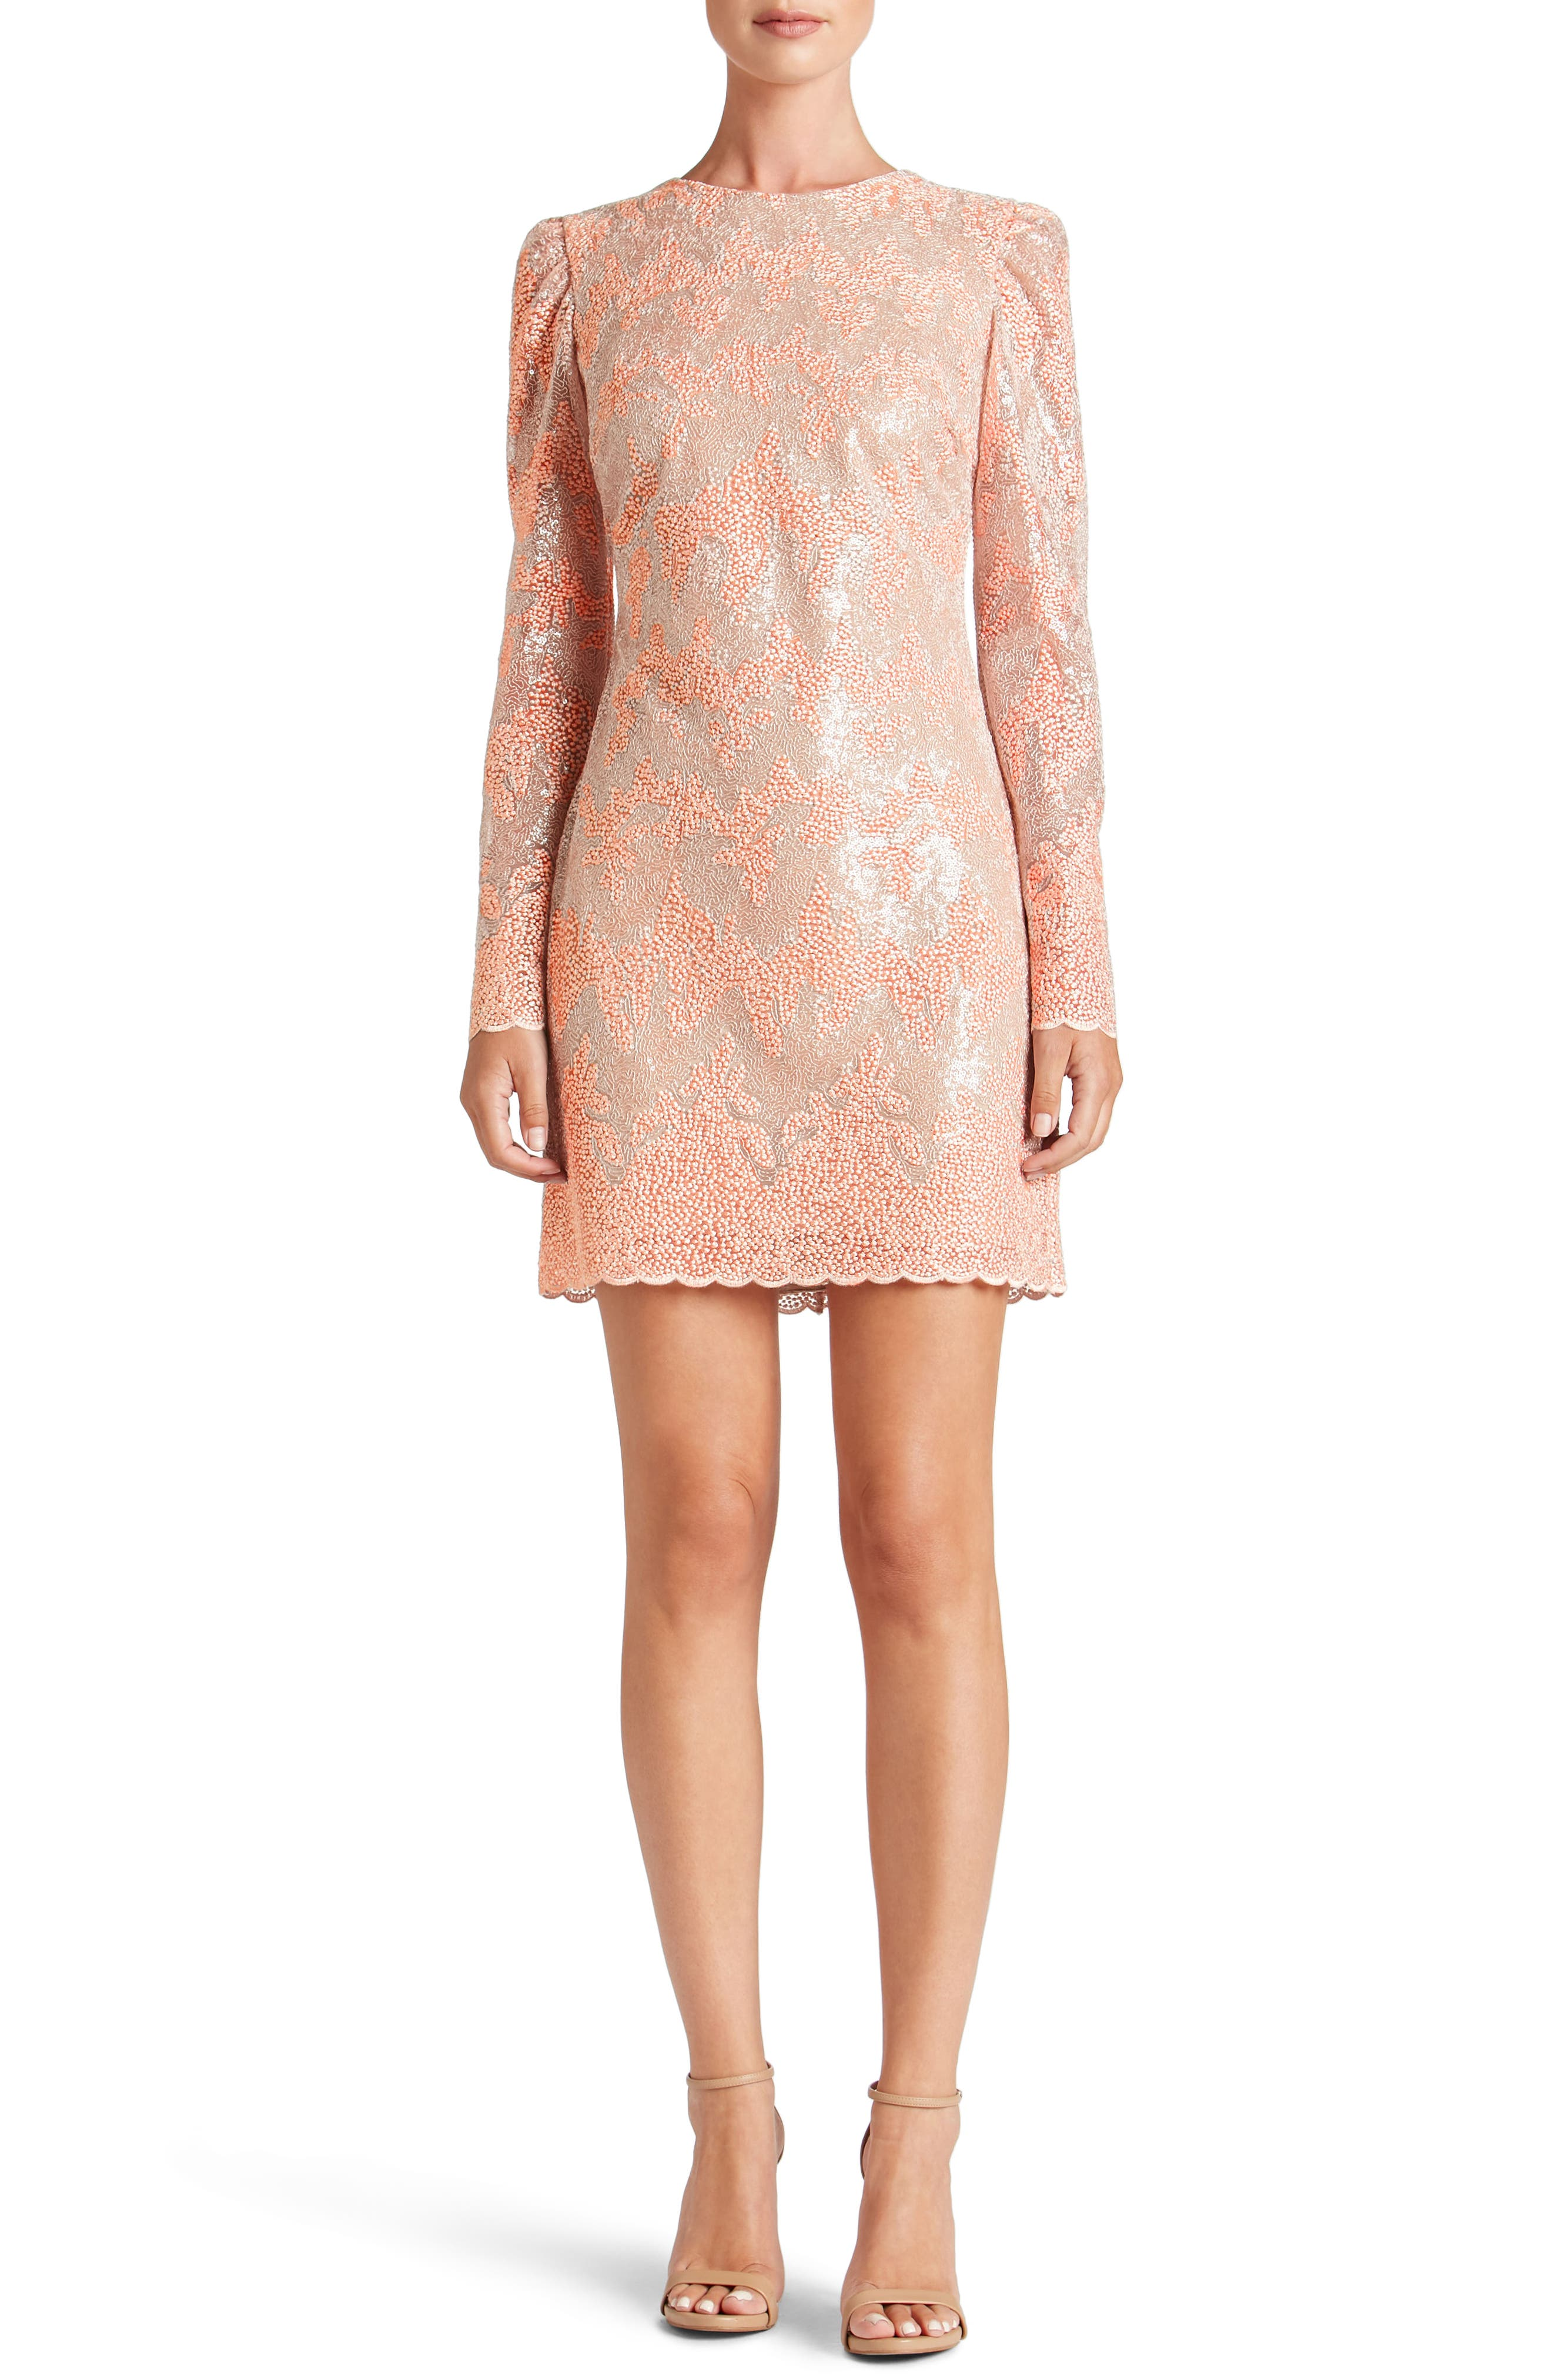 Aubry Sequin Embellished Shift Dress,                             Main thumbnail 1, color,                             686